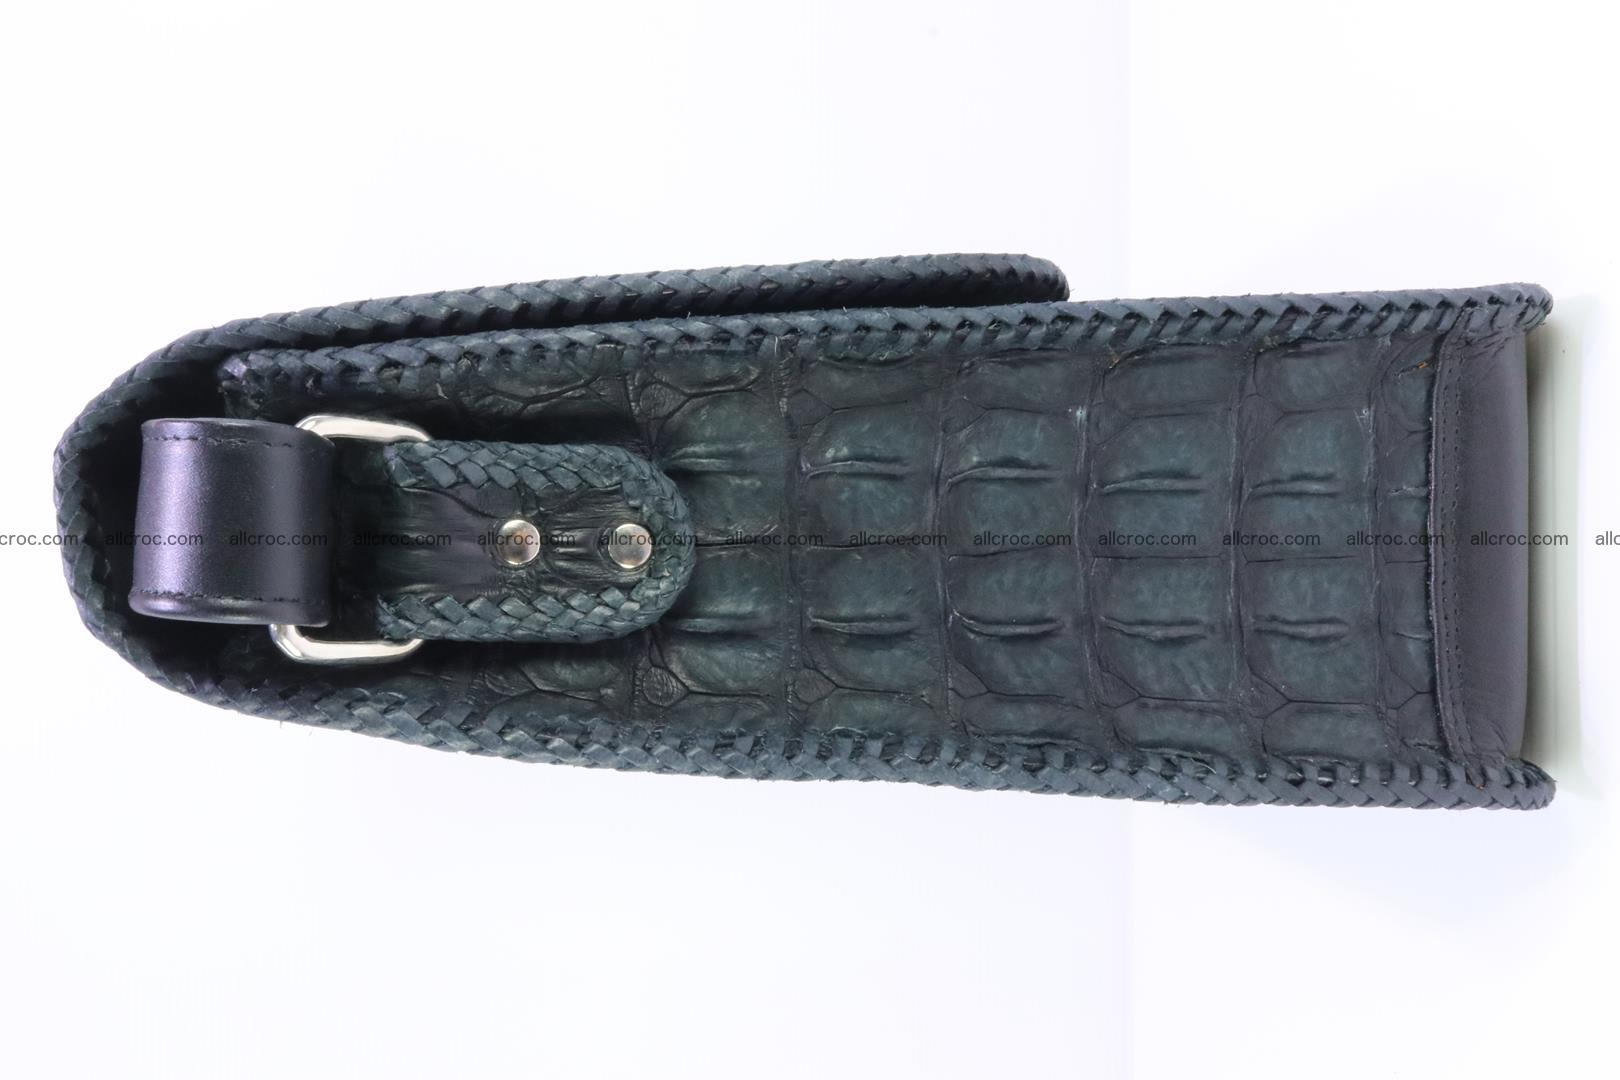 Сrocodile skin shoulder bag with braided edges 143 Foto 4